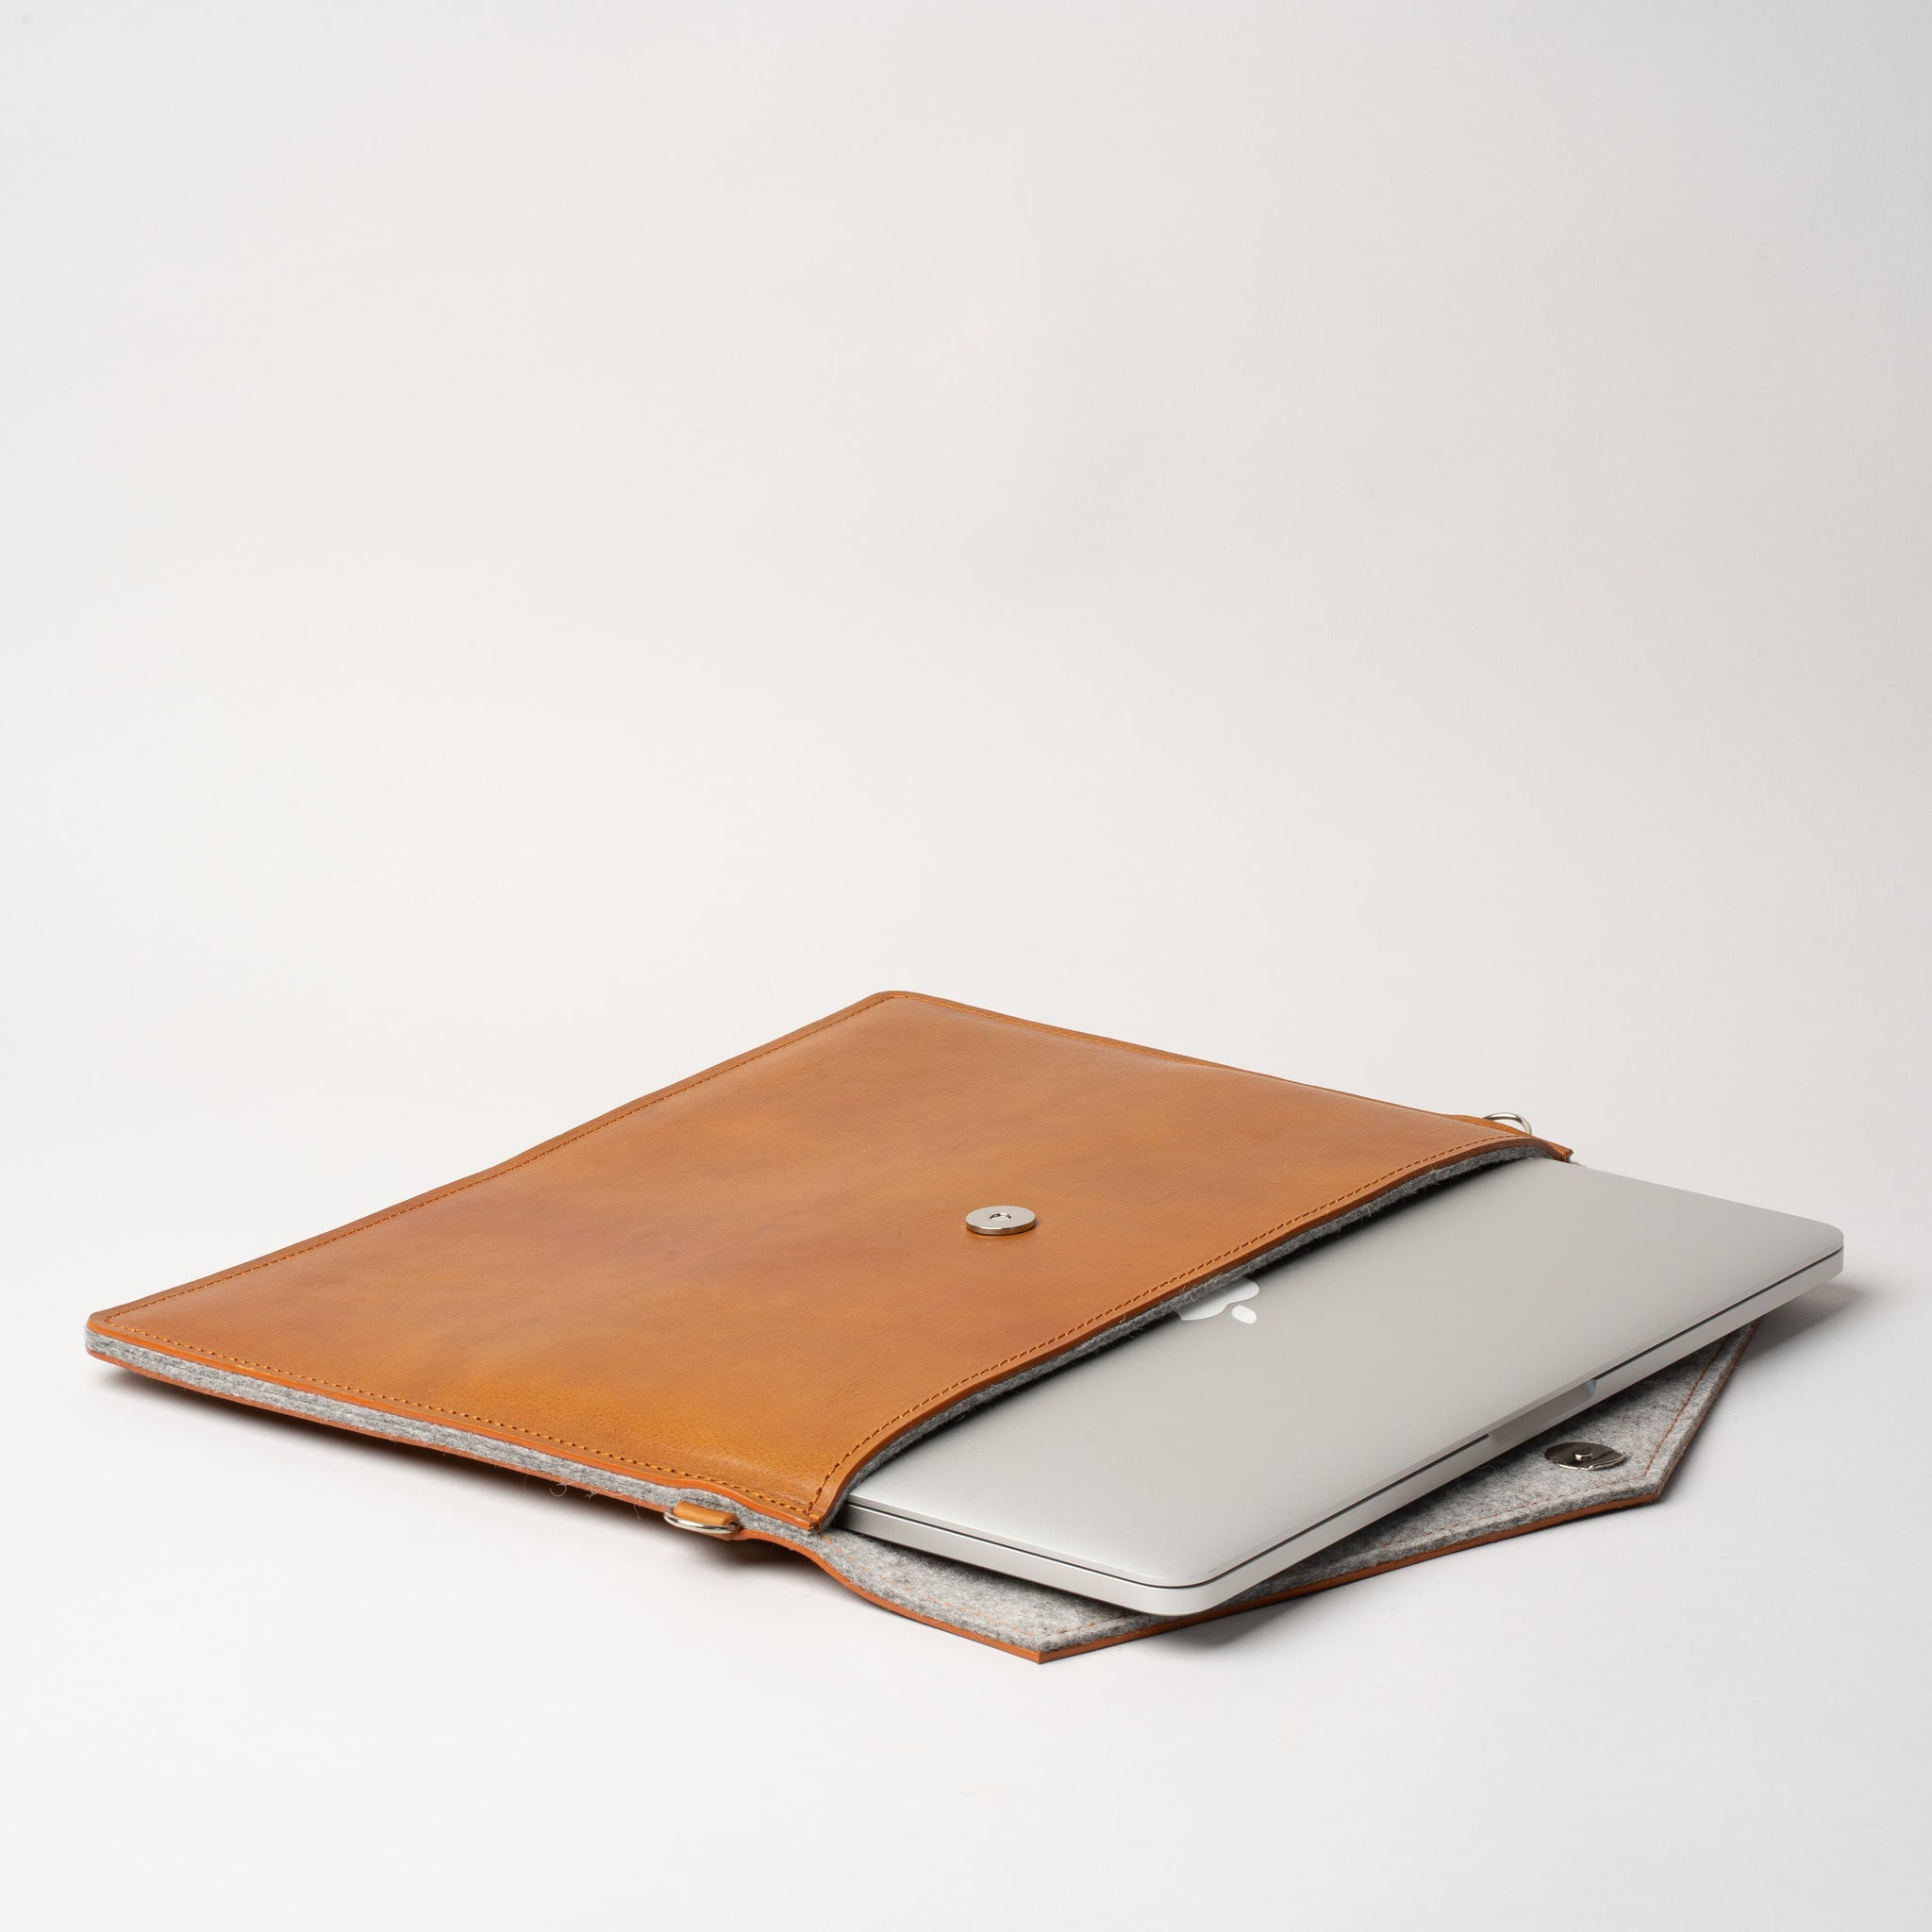 macbook pro 13 leather sleeve